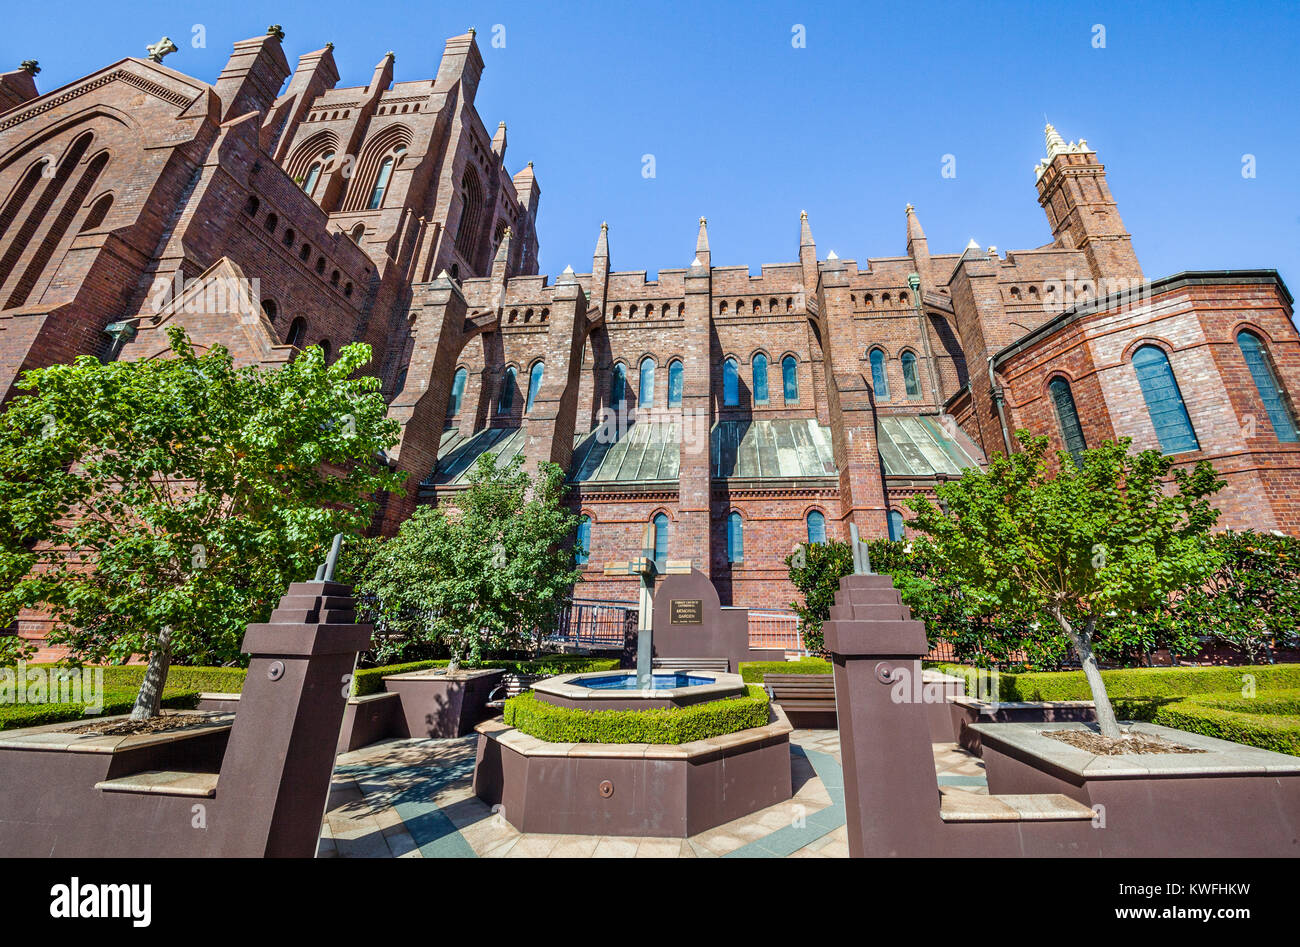 Australien, New South Wales, Newcastle, Blick auf den Neugotischen Stil Christ Church Cathedral (oder Kathedrale Stockbild